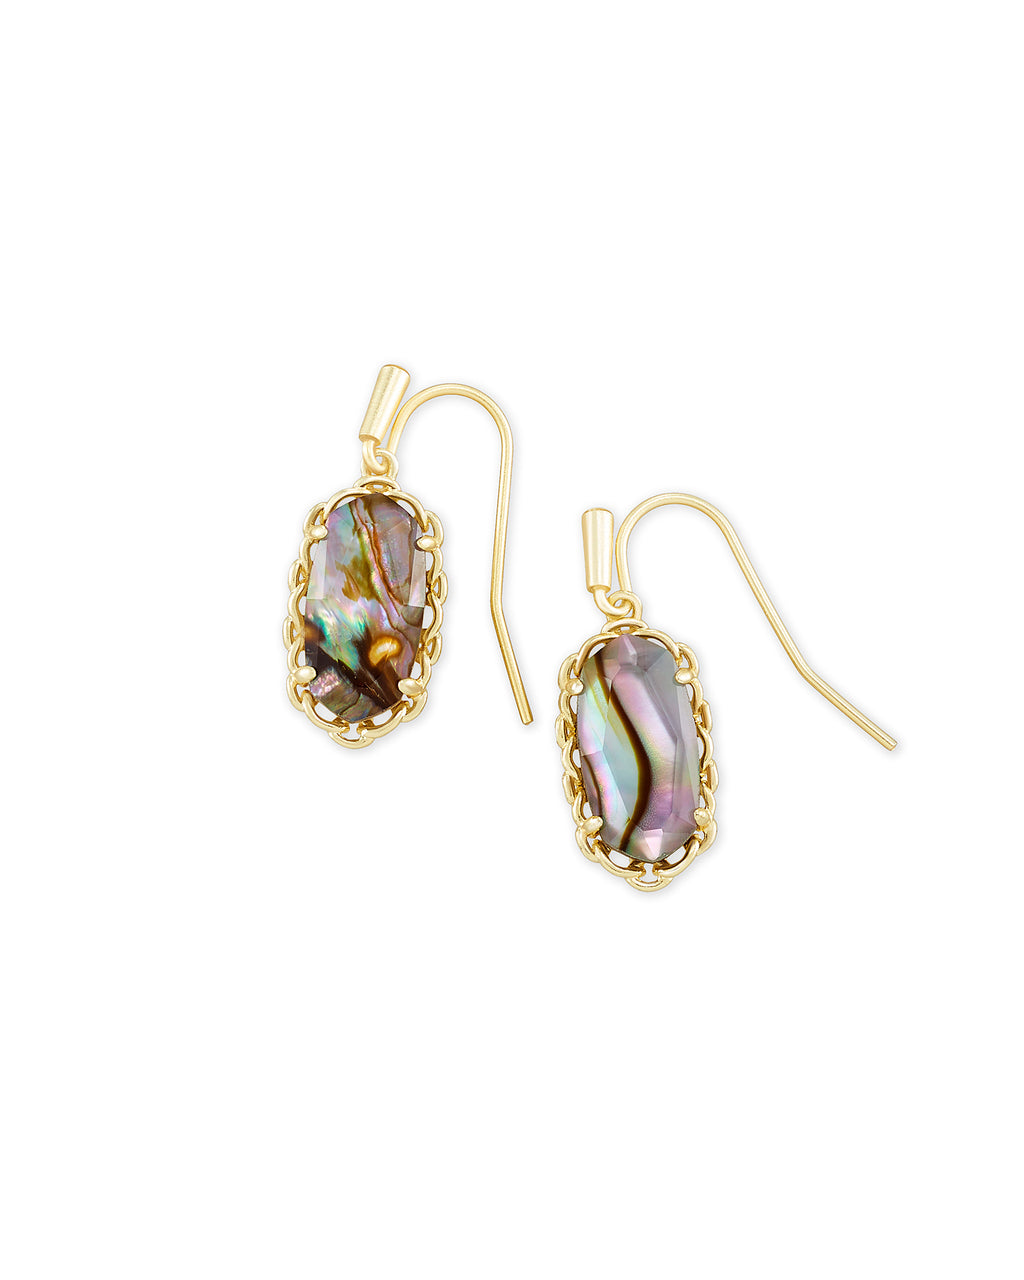 Macrame Lee Gold Earring in Nude Abalone